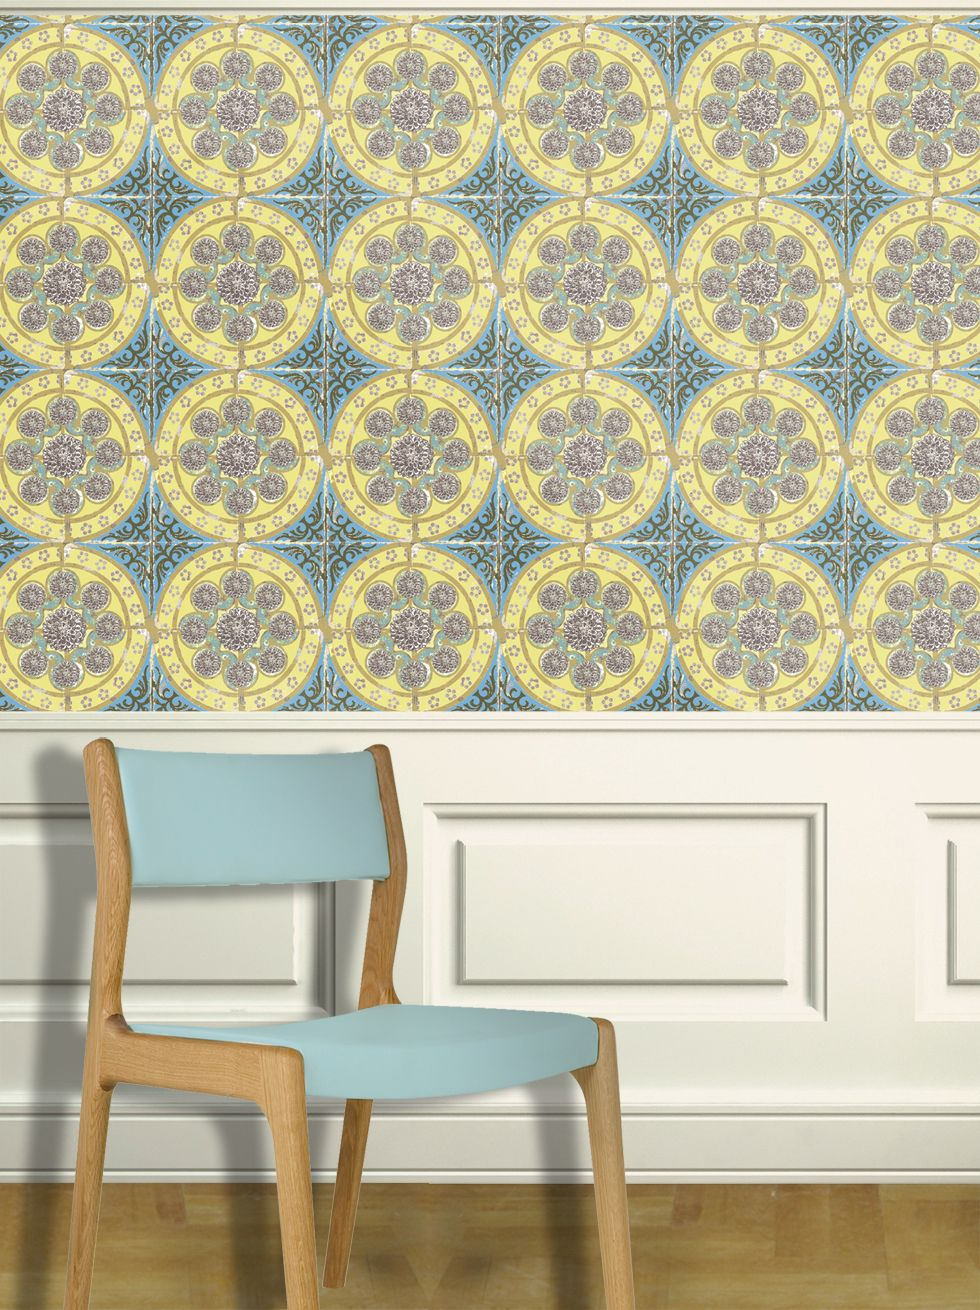 Louise Body Dahlia Yellow / Aqua Wallpaper - Product code: Dahlia